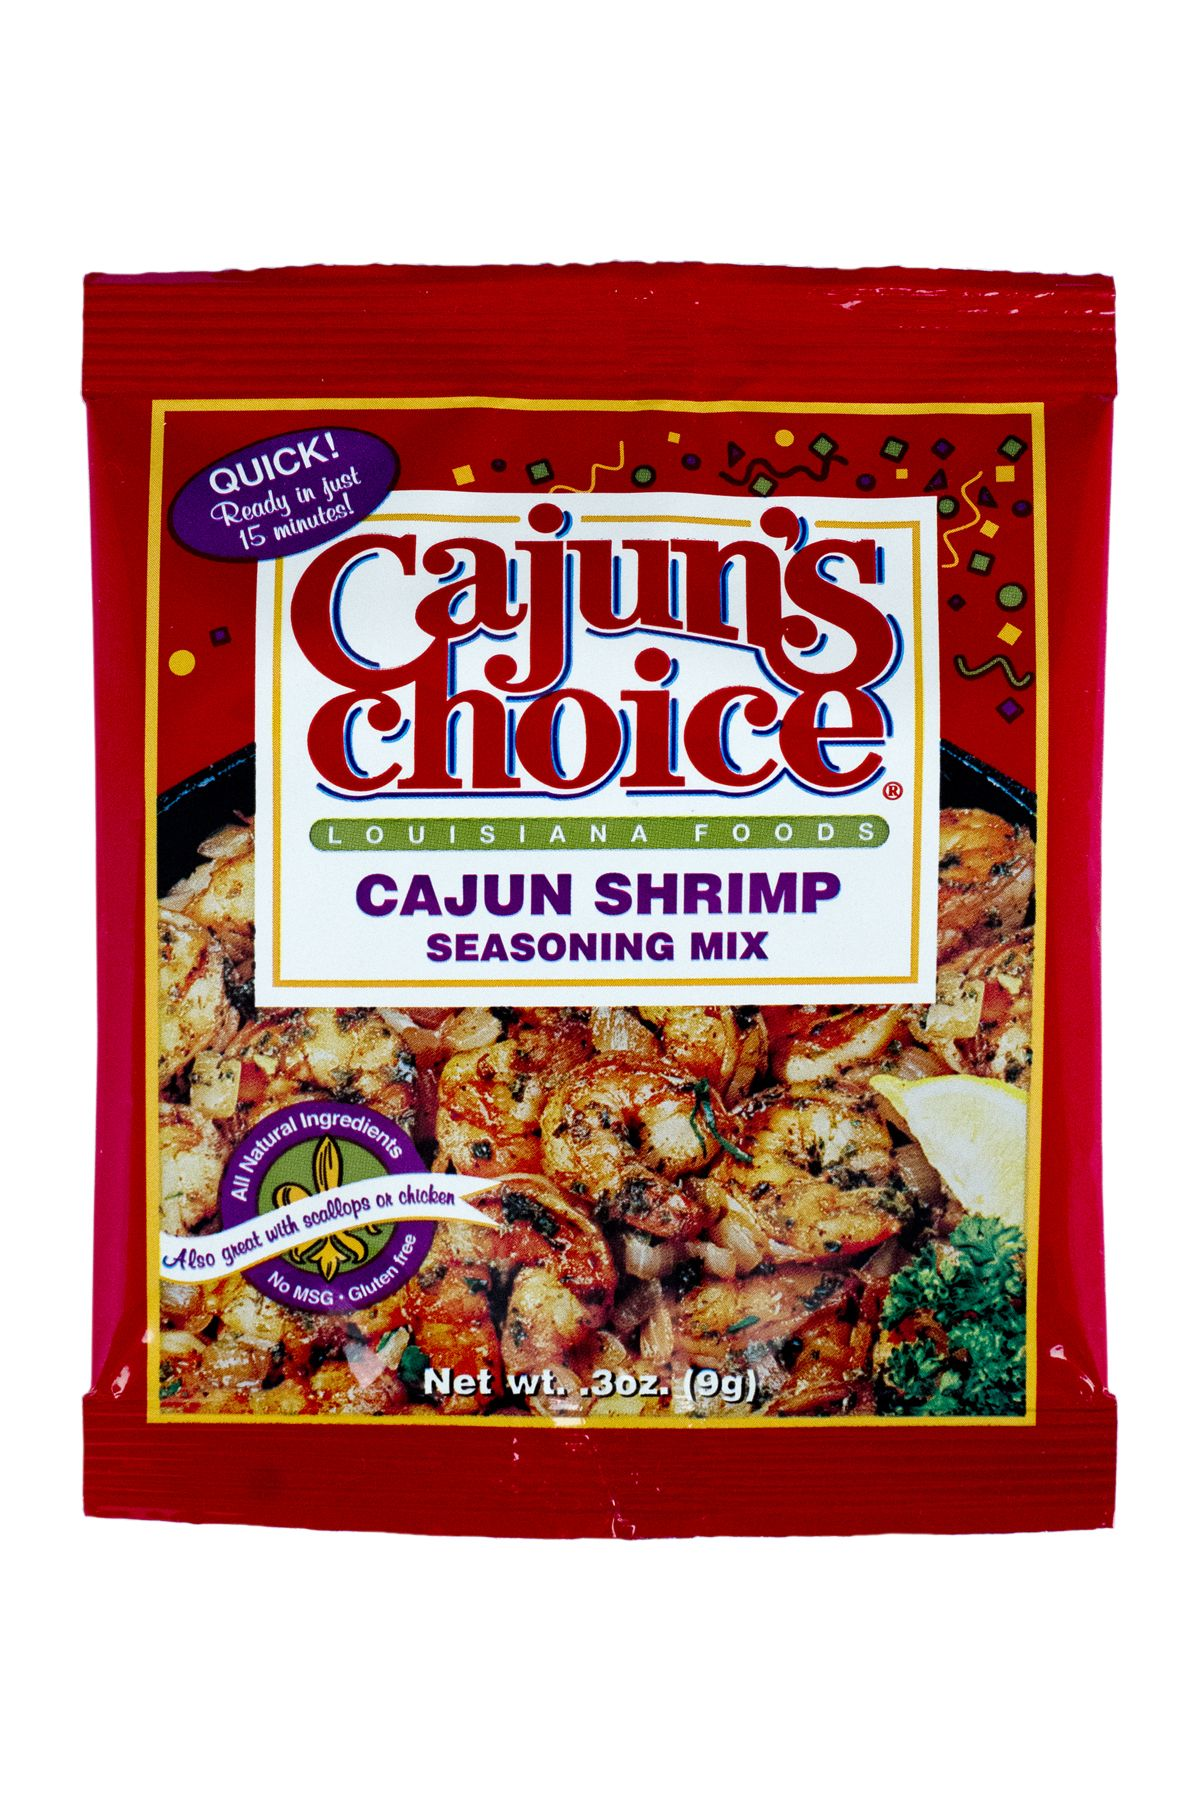 Cajuns Choice Cajun Shrimp